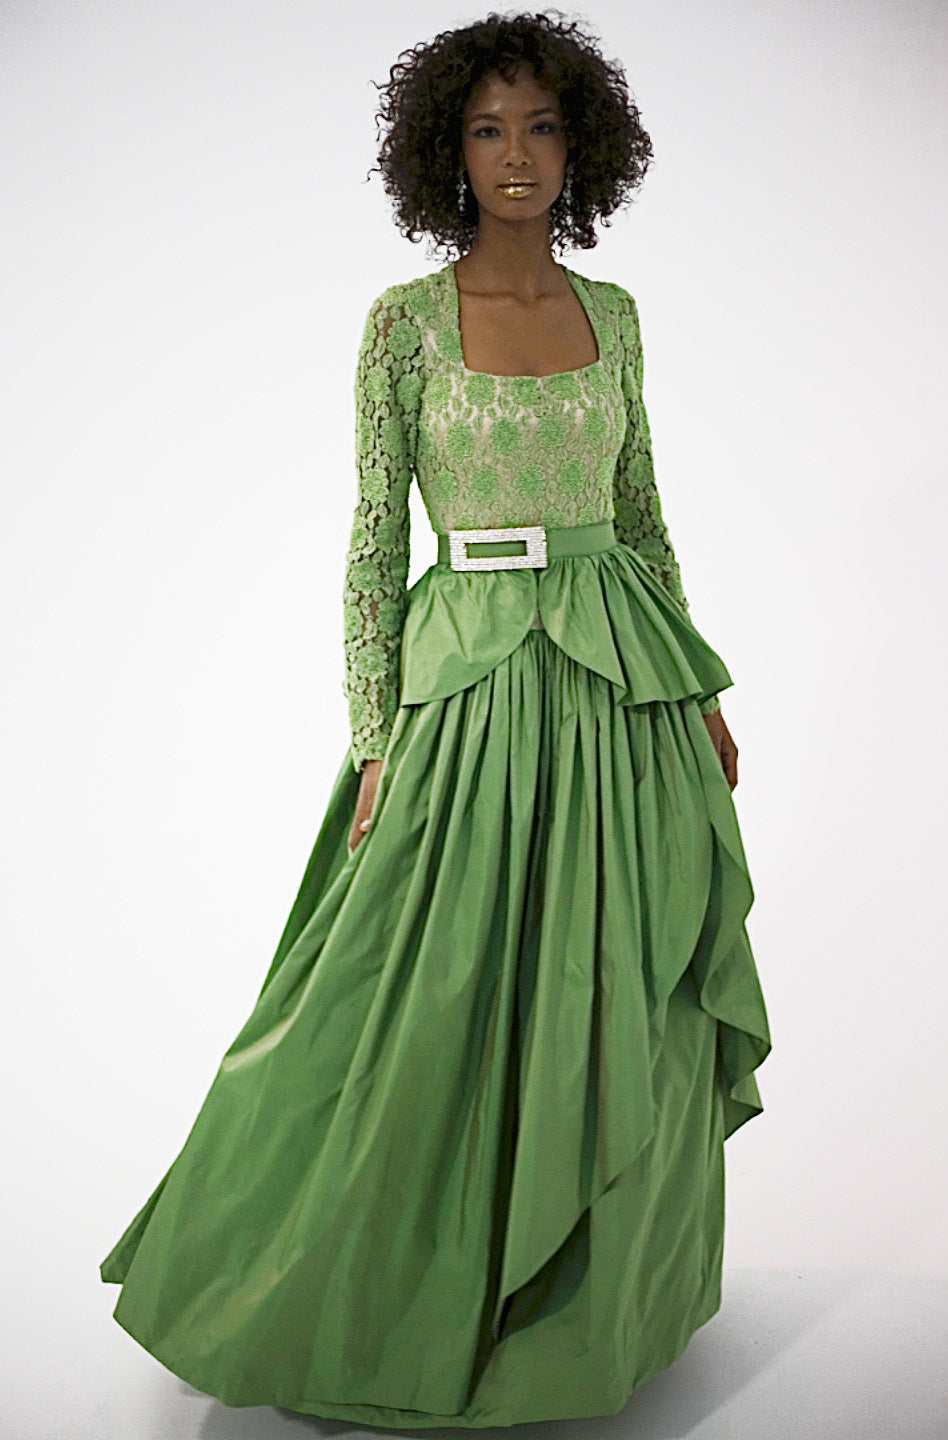 Ocean Green/Silk Taffeta Long Sleeve Hand Beaded Bodice w/ Double Layers Skirt Ball Gown